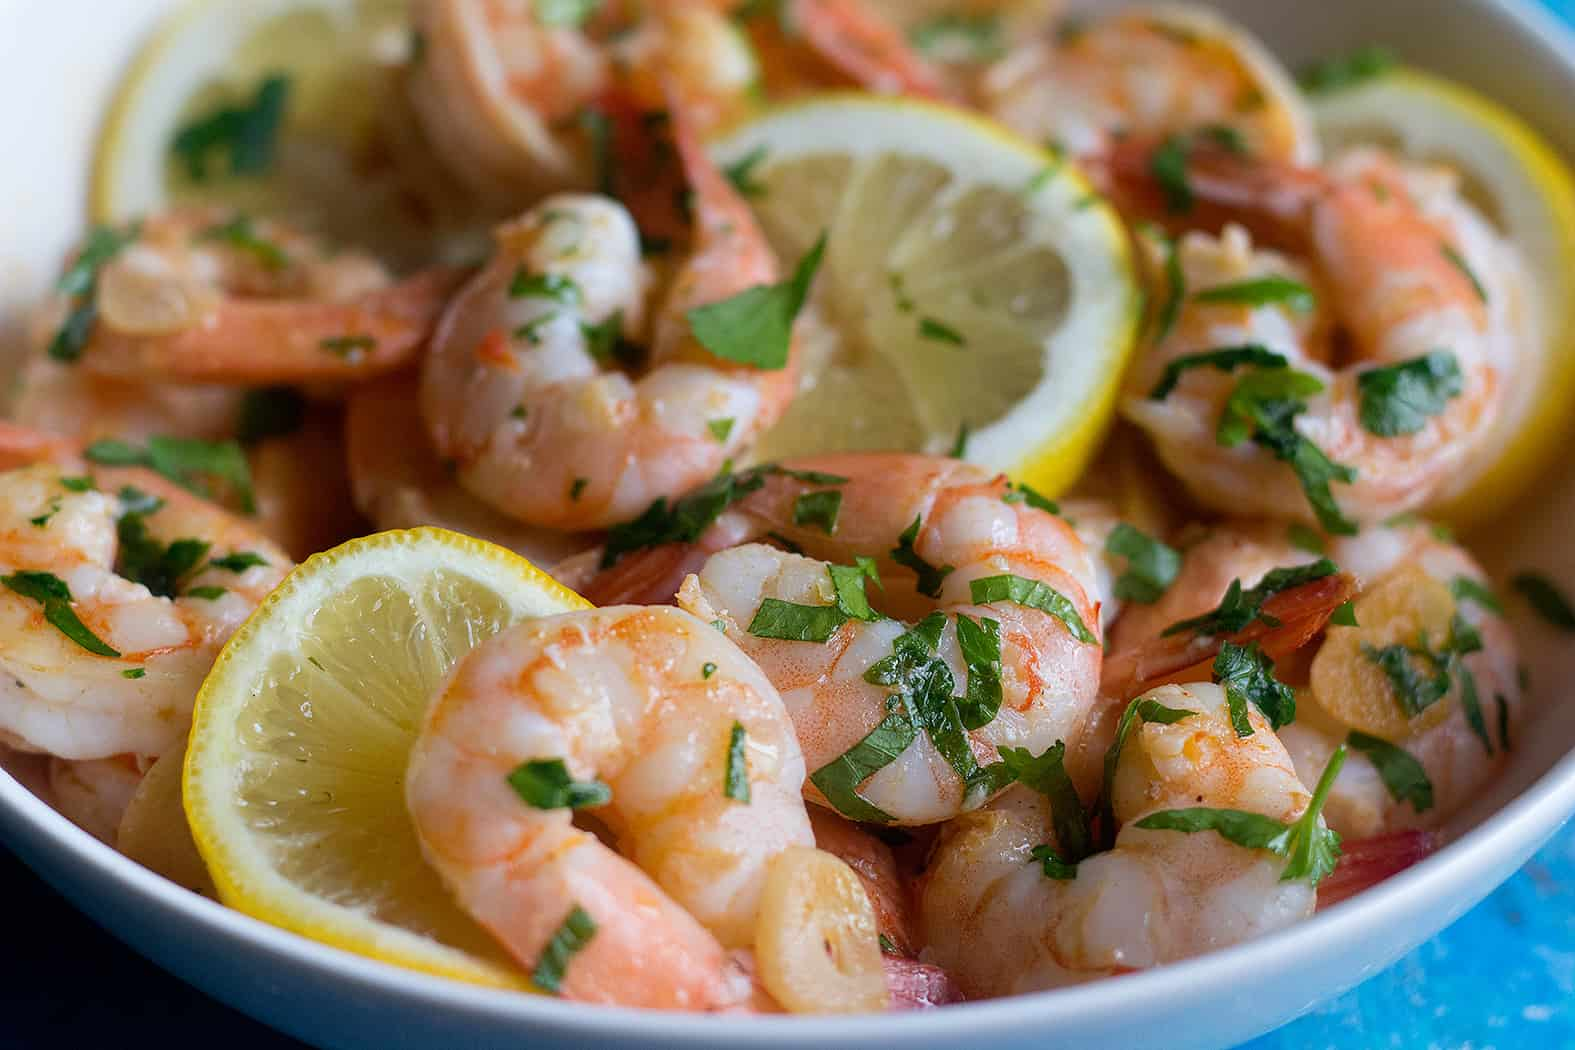 A bowl of sauteed shrimp served with lemon slices.